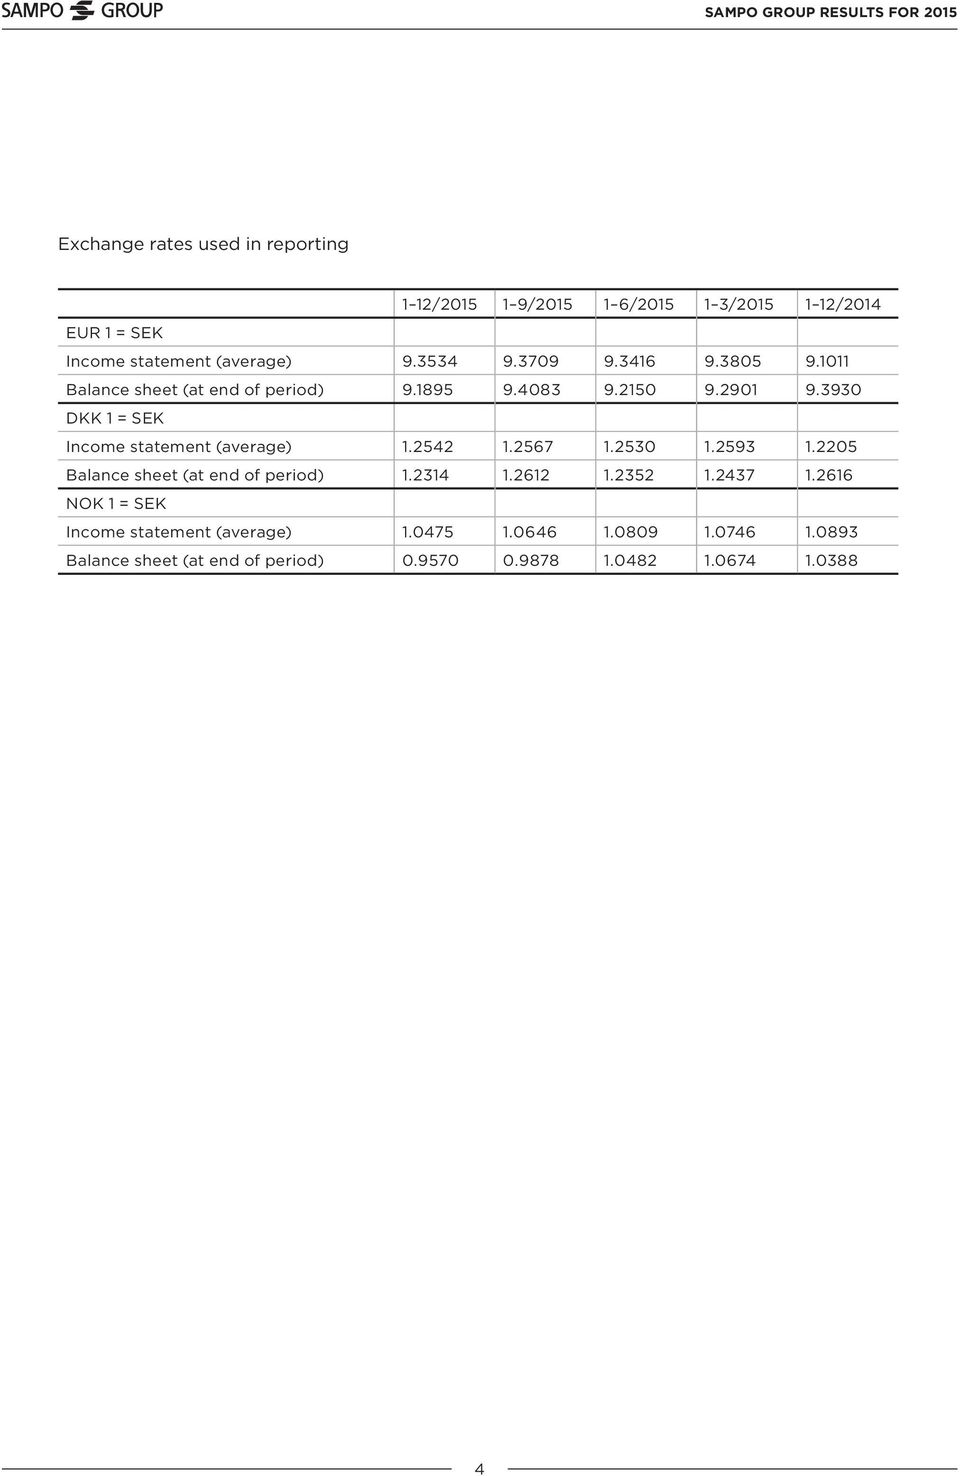 3930 DKK 1 = SEK Income statement (average) 1.2542 1.2567 1.2530 1.2593 1.2205 Balance sheet (at end of period) 1.2314 1.